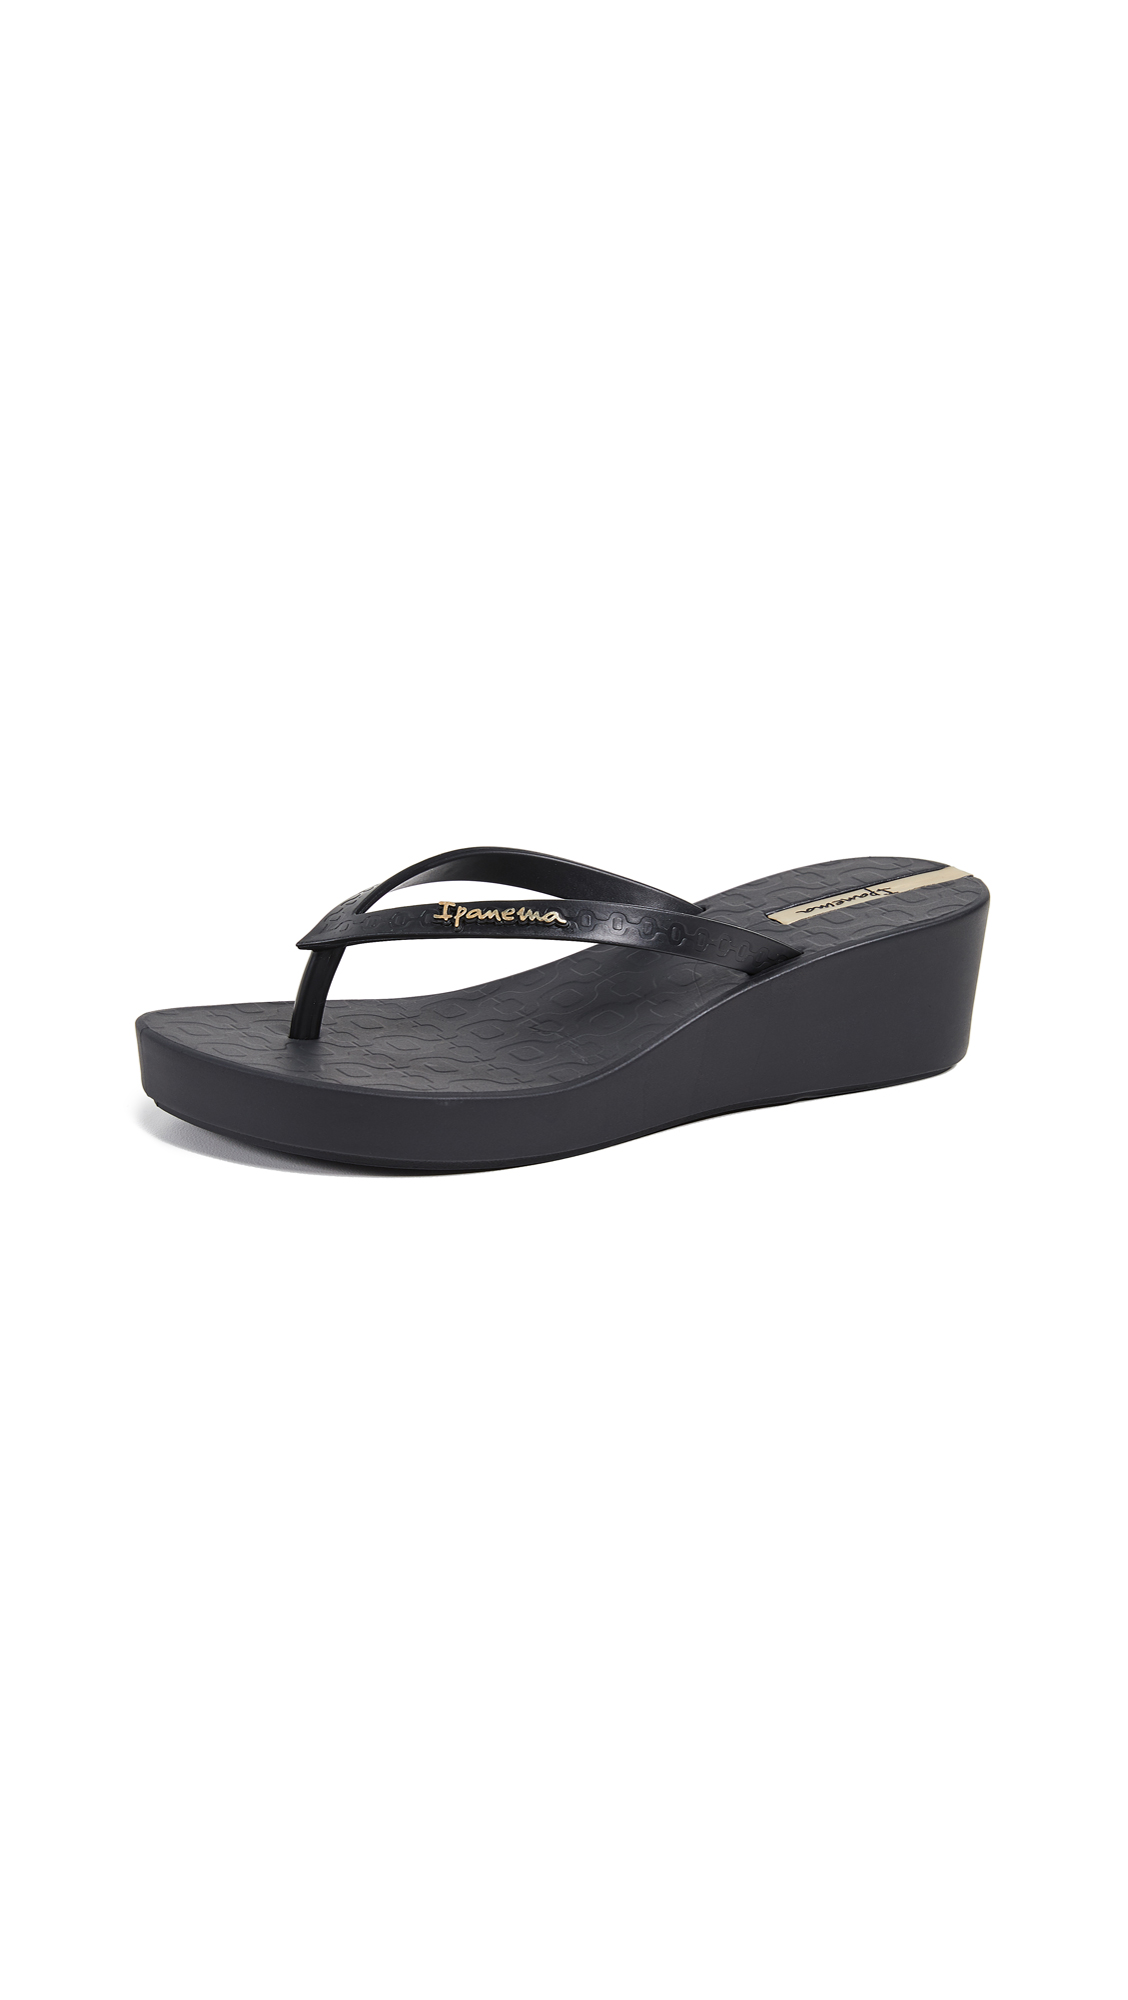 Ipanema Daisy Wedge Flip Flops - Black